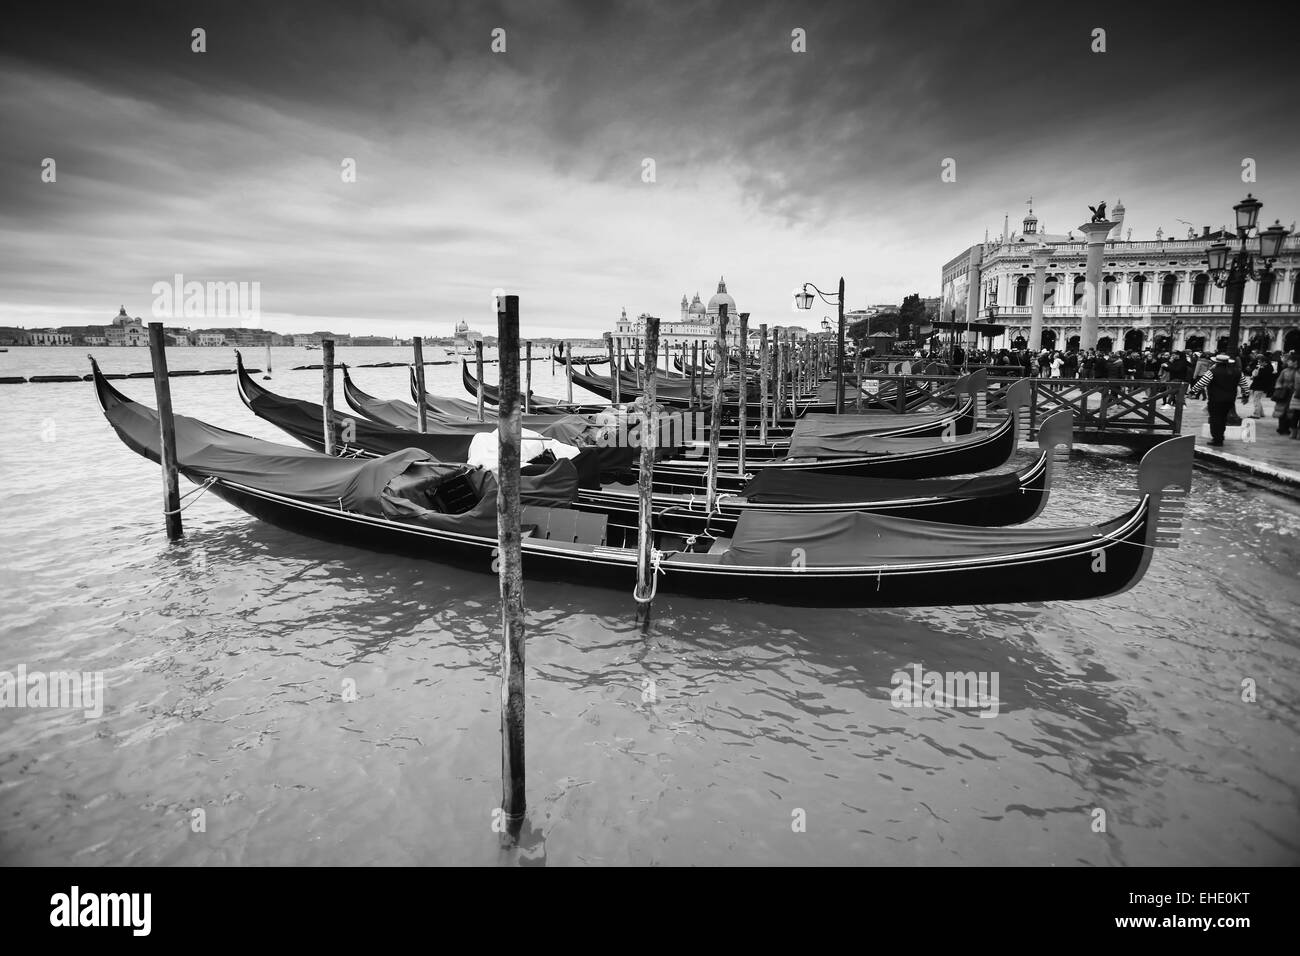 Gondolas moored in the water canal in front of people walking on Riva degli Schiavoni in Venice, Italy. - Stock Image